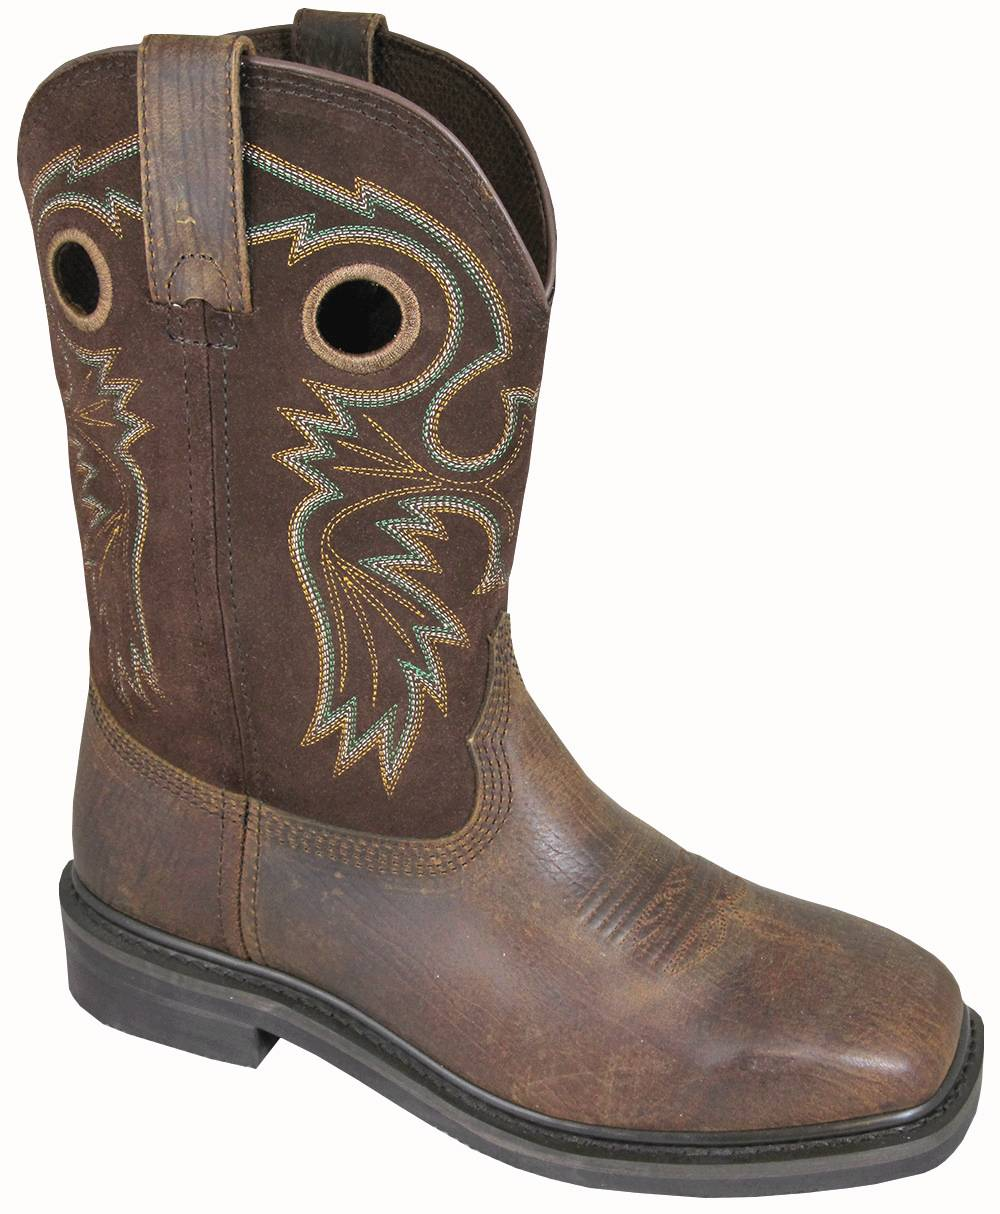 Smoky Mountain Men's Grizzly Square Toe Boots